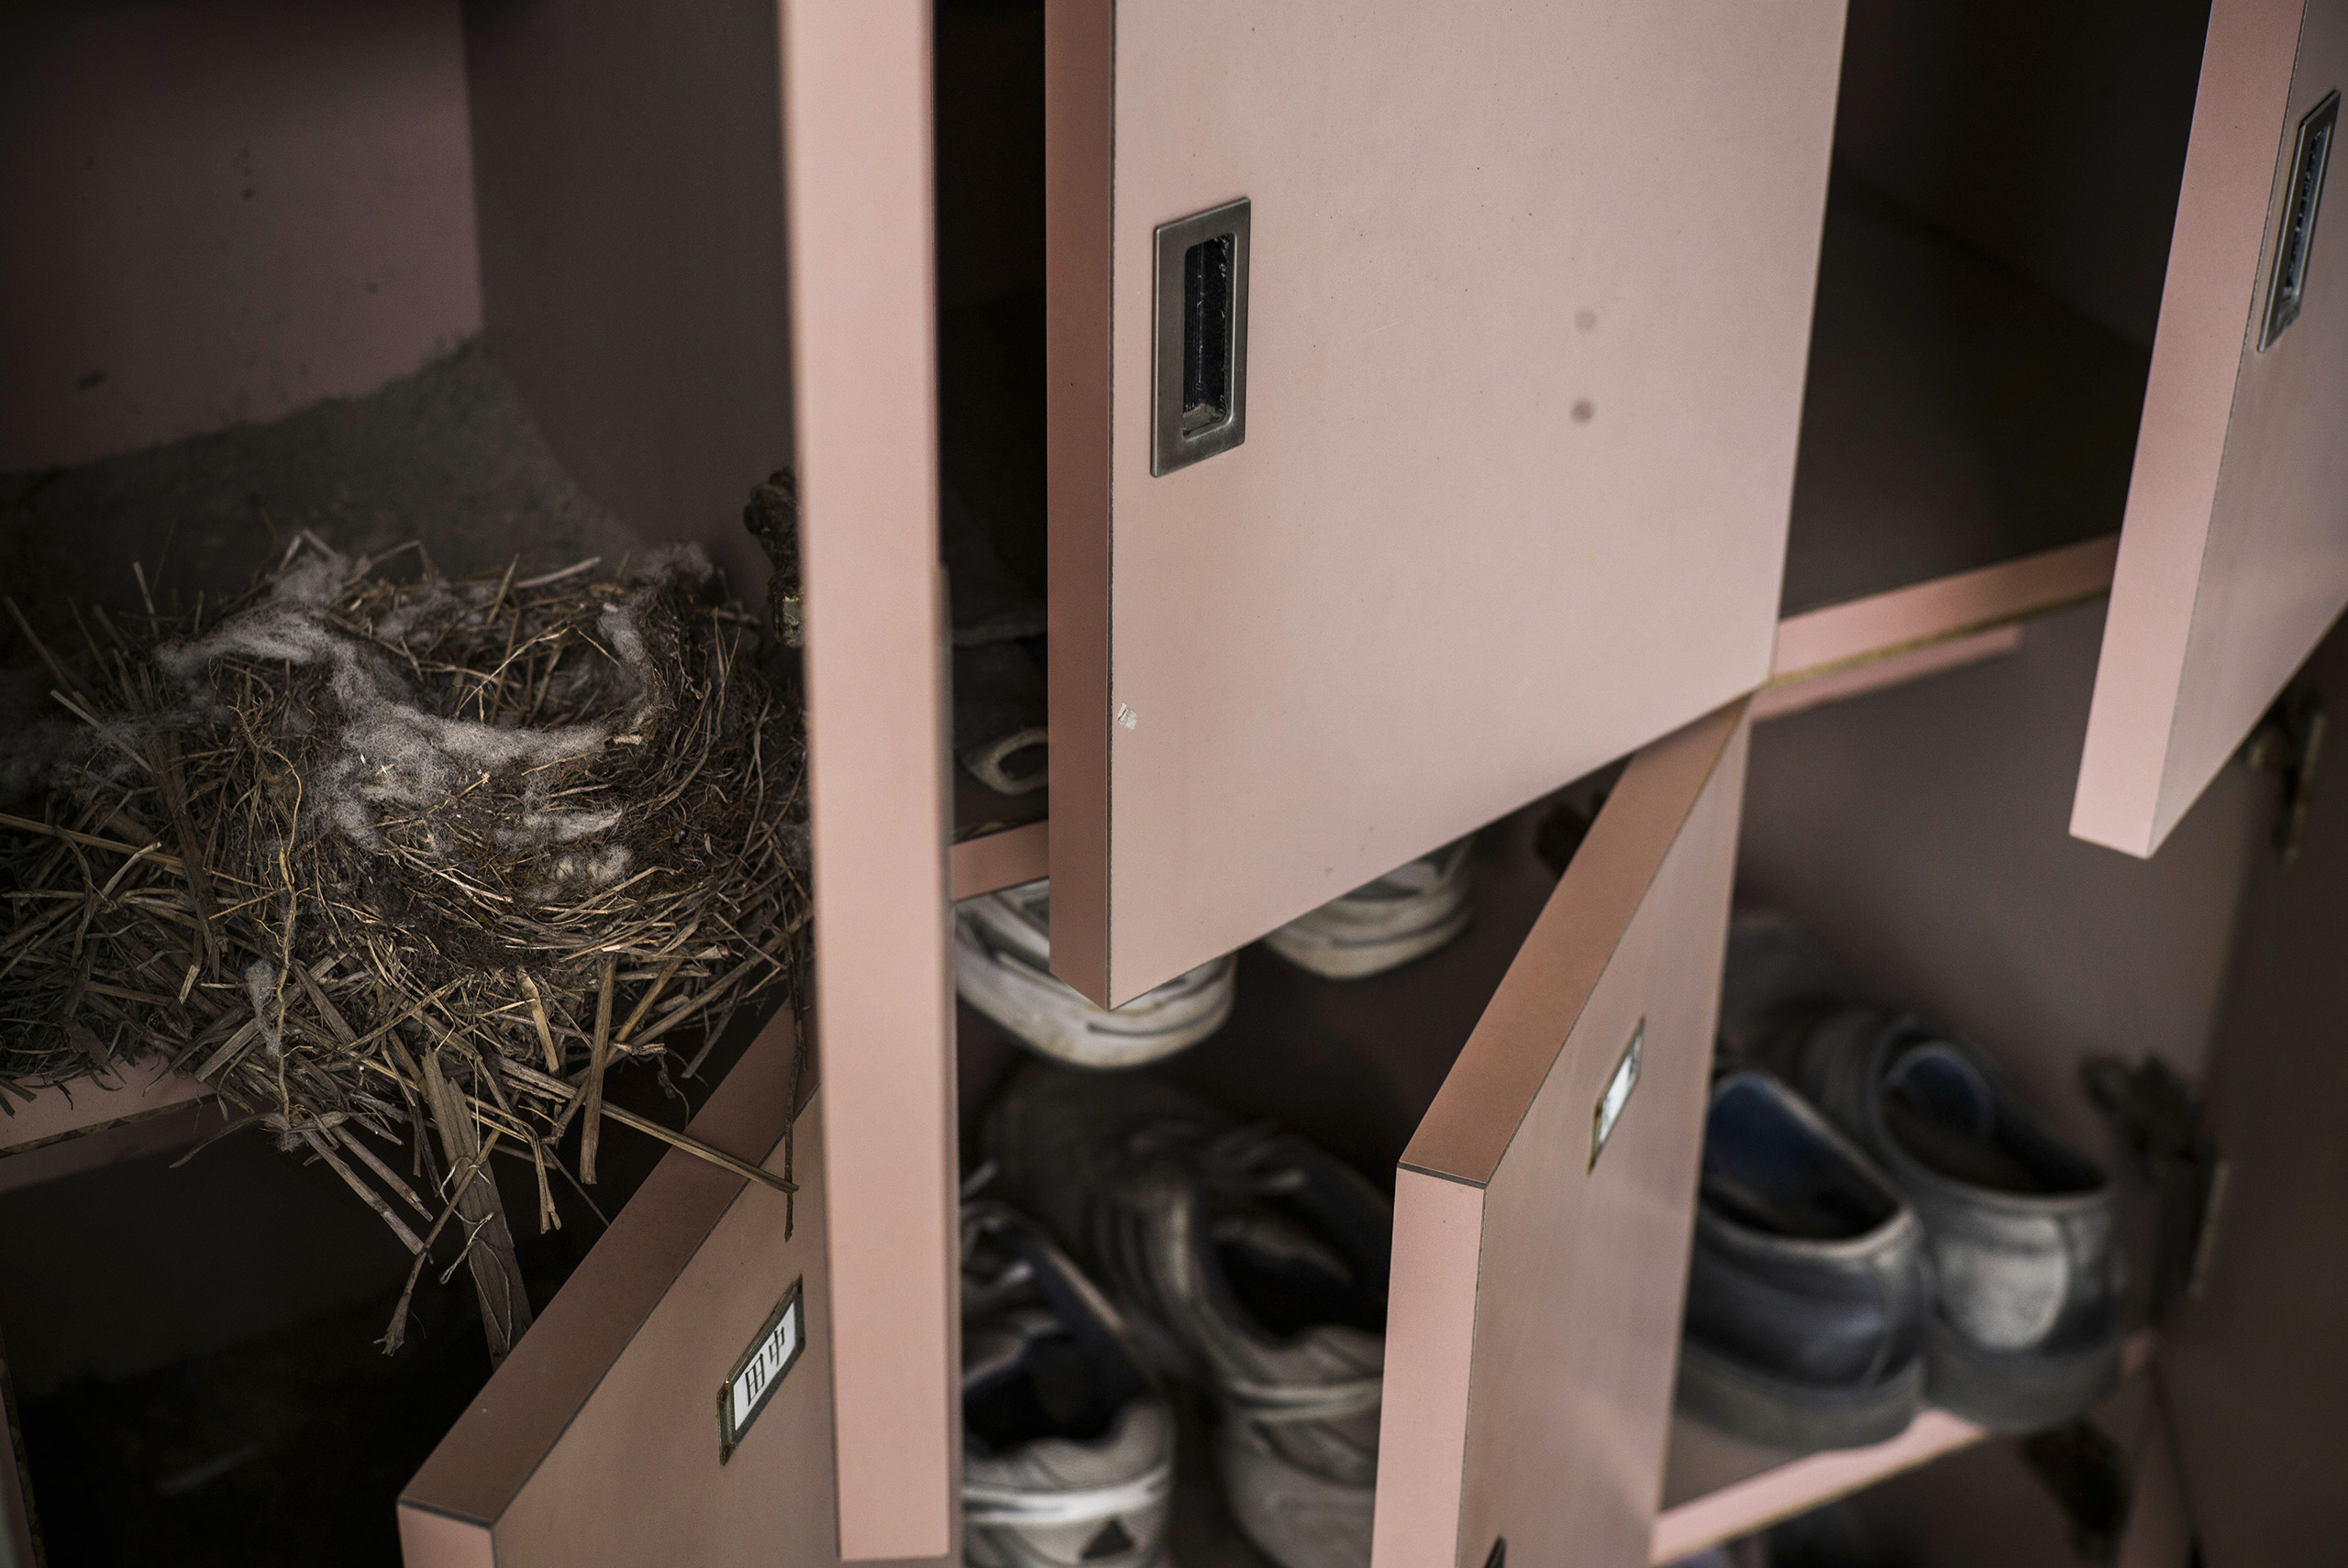 A birds nest can be seen inside a locker at a Ukedo elementary school, which was damaged by the tsunami, inside the restricted 20km exclusion zone, Namie, March 10, 2016.